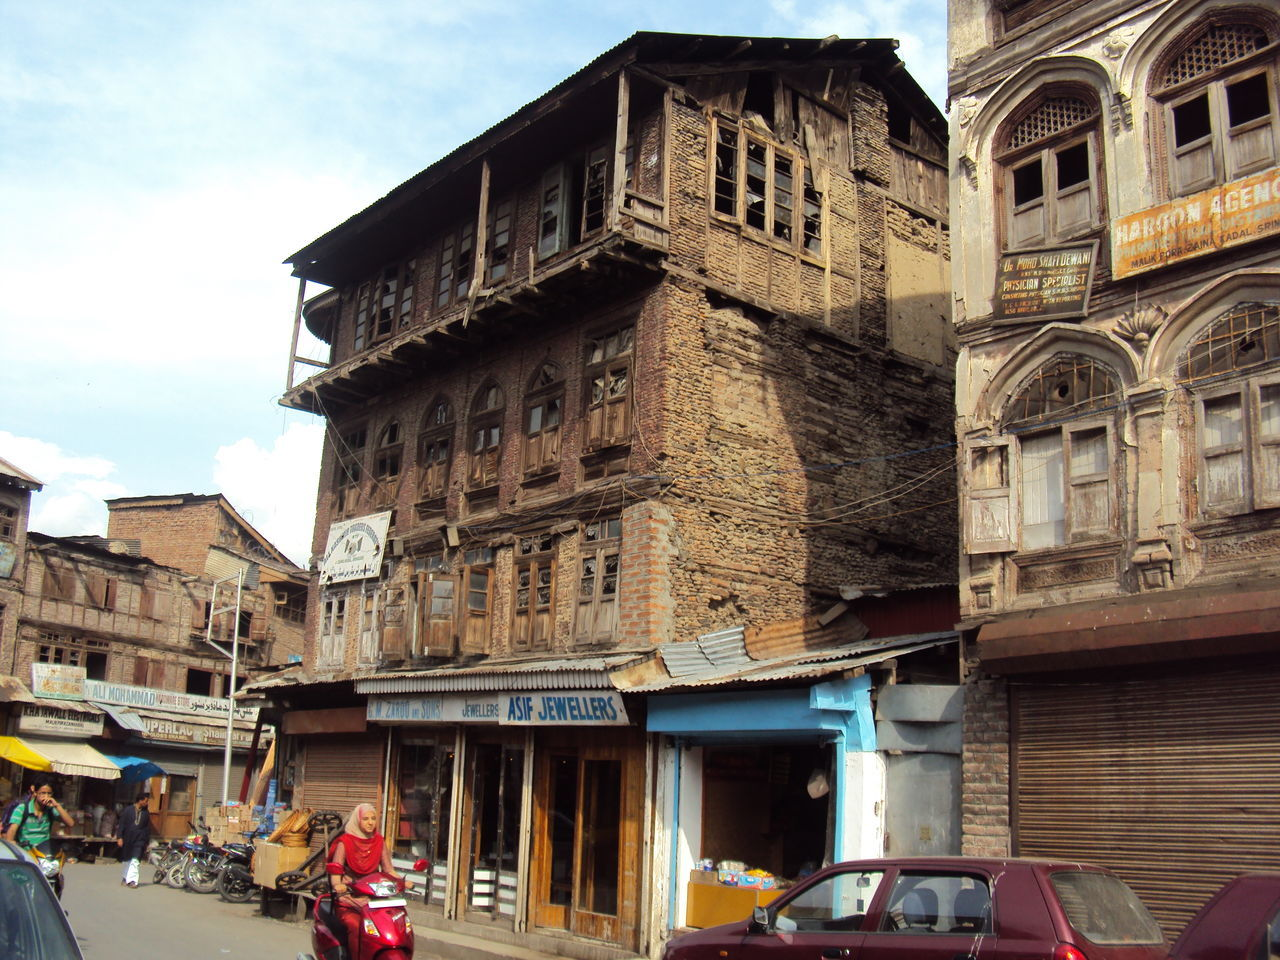 A day in downtown kashmir Architecture Building Exterior City Day Downtown Low Angle View Outdoors Srinagar Kashmir Travel Destinations